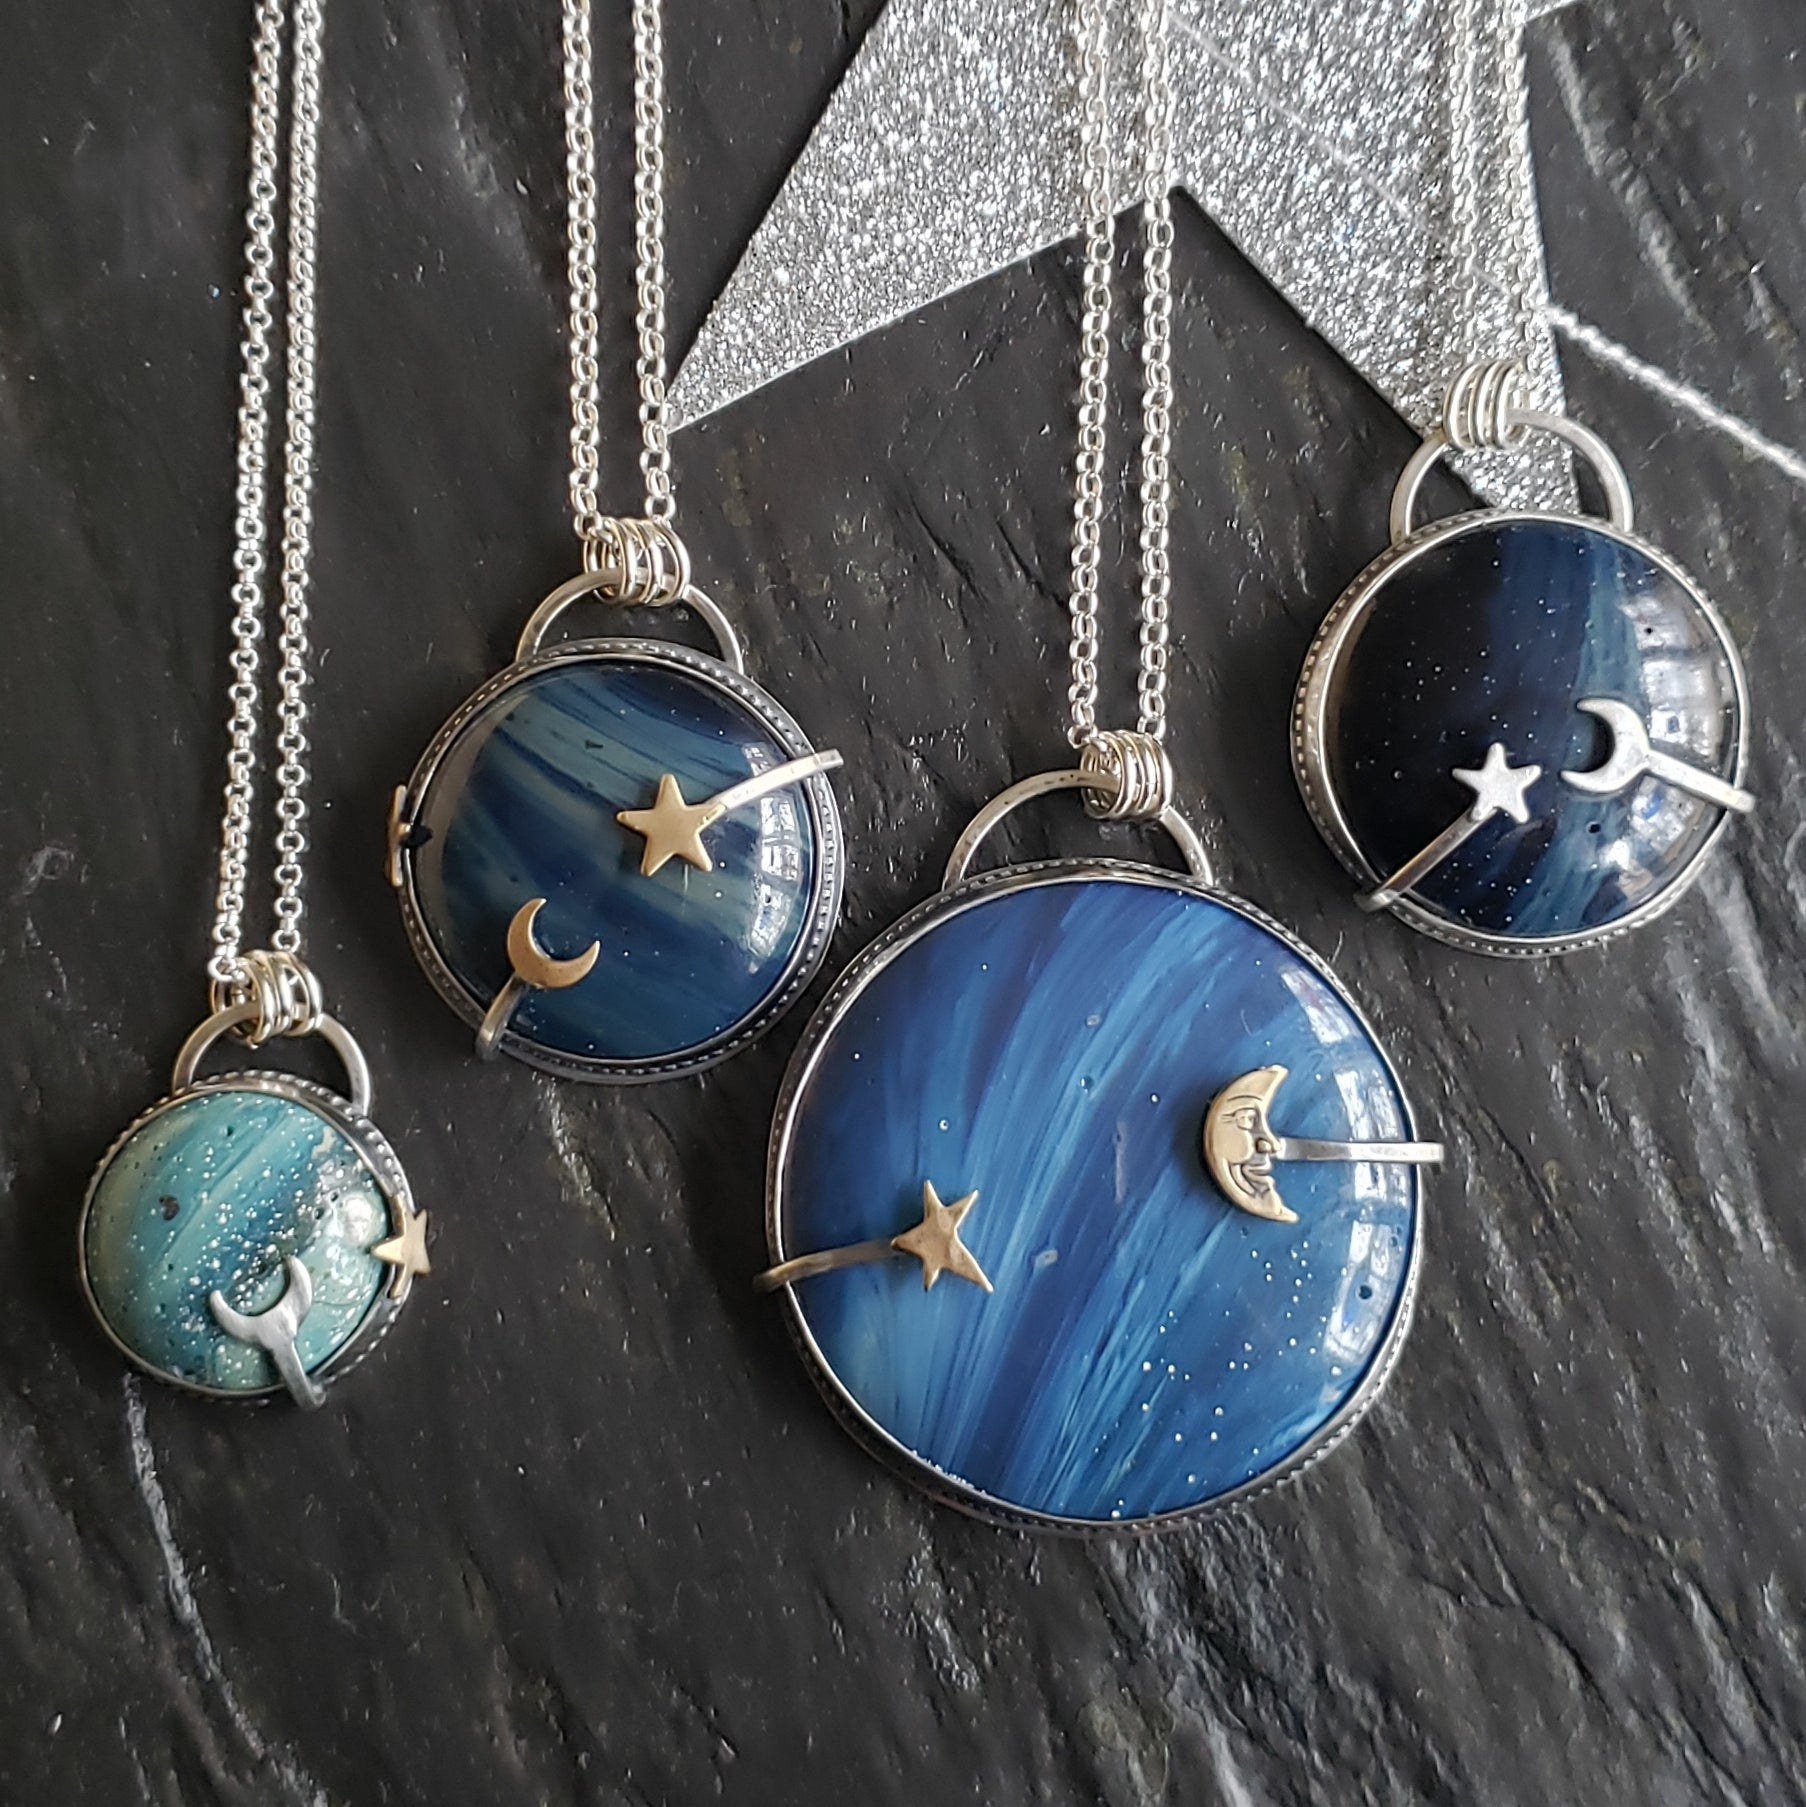 Celestial Energy Leland Blue Pendants in Sterling Silver